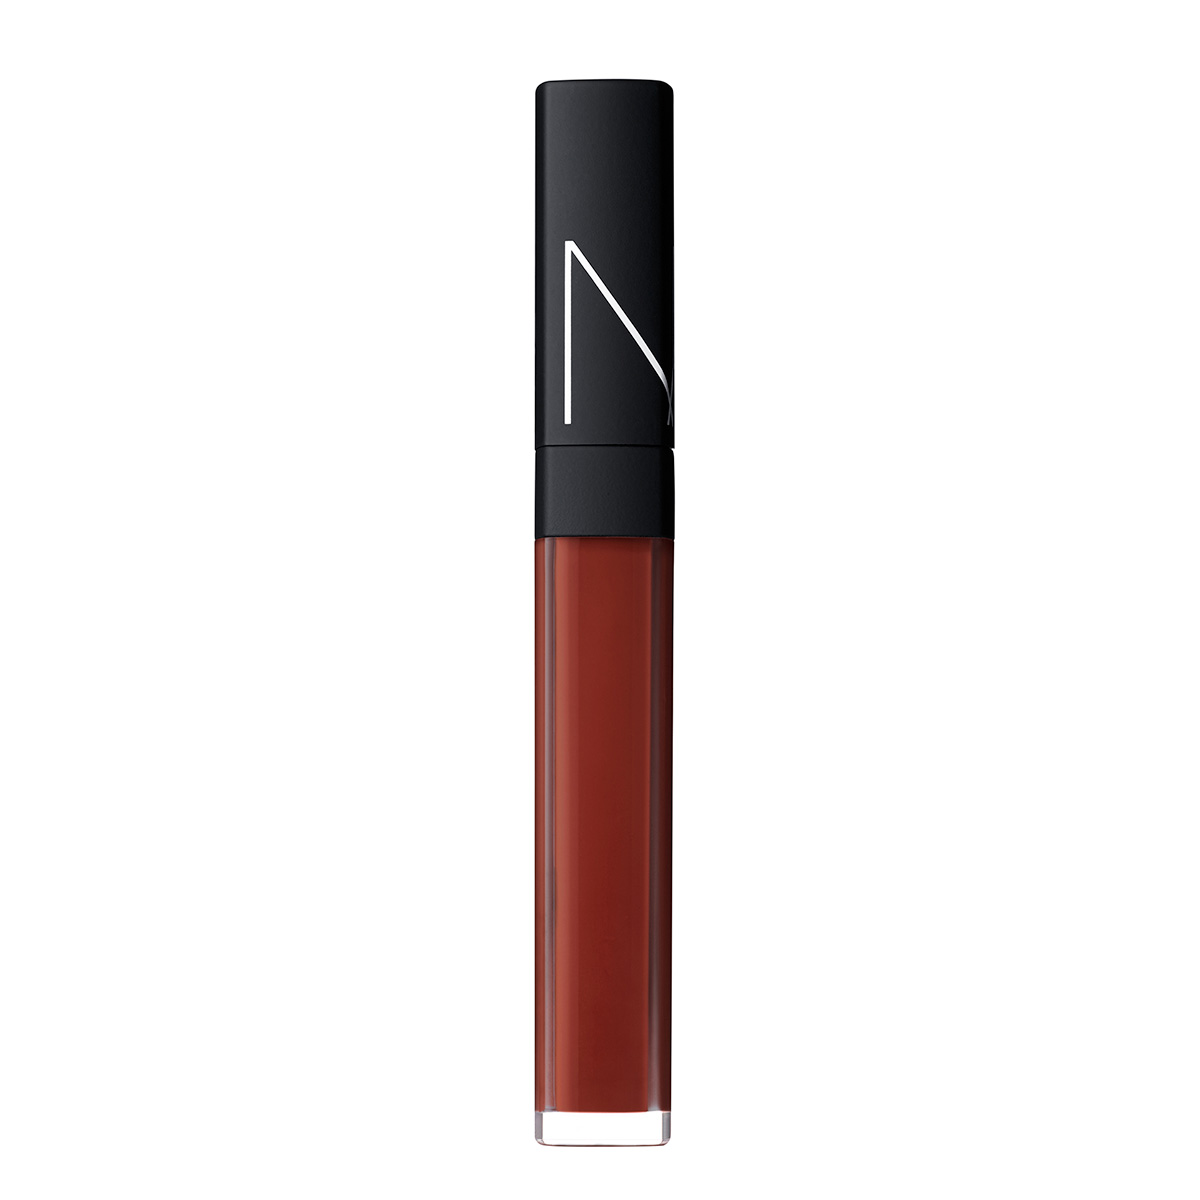 Arag 243 N Lip Gloss Nars Cosmetics